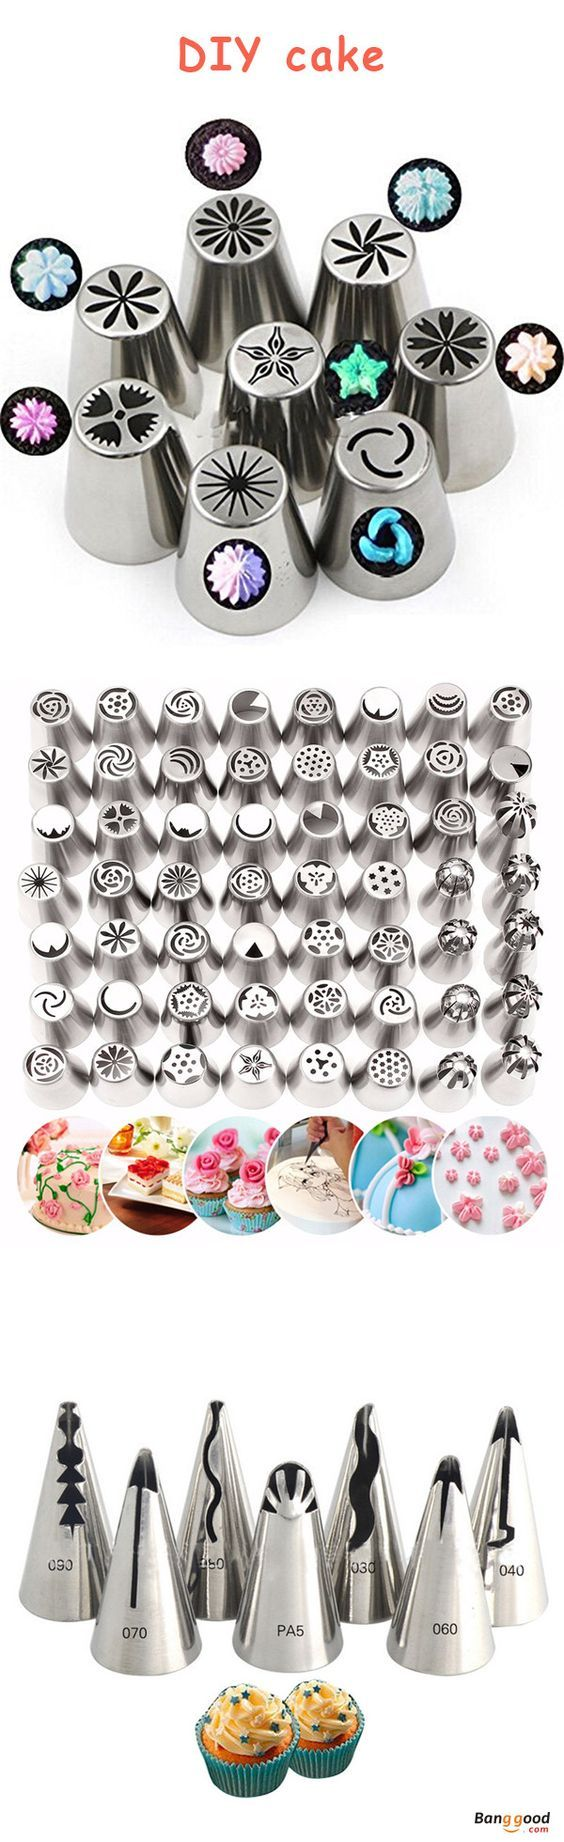 US$51 + Free shipping. Cake Decorating, Kitchen Ideas, Food Desserts, DIY Crafts. Desserts For Party. Material: Stainless steel. Used for decorating the cake, cookies puff model. Comply with food safety standards, bring you different feeling of life.